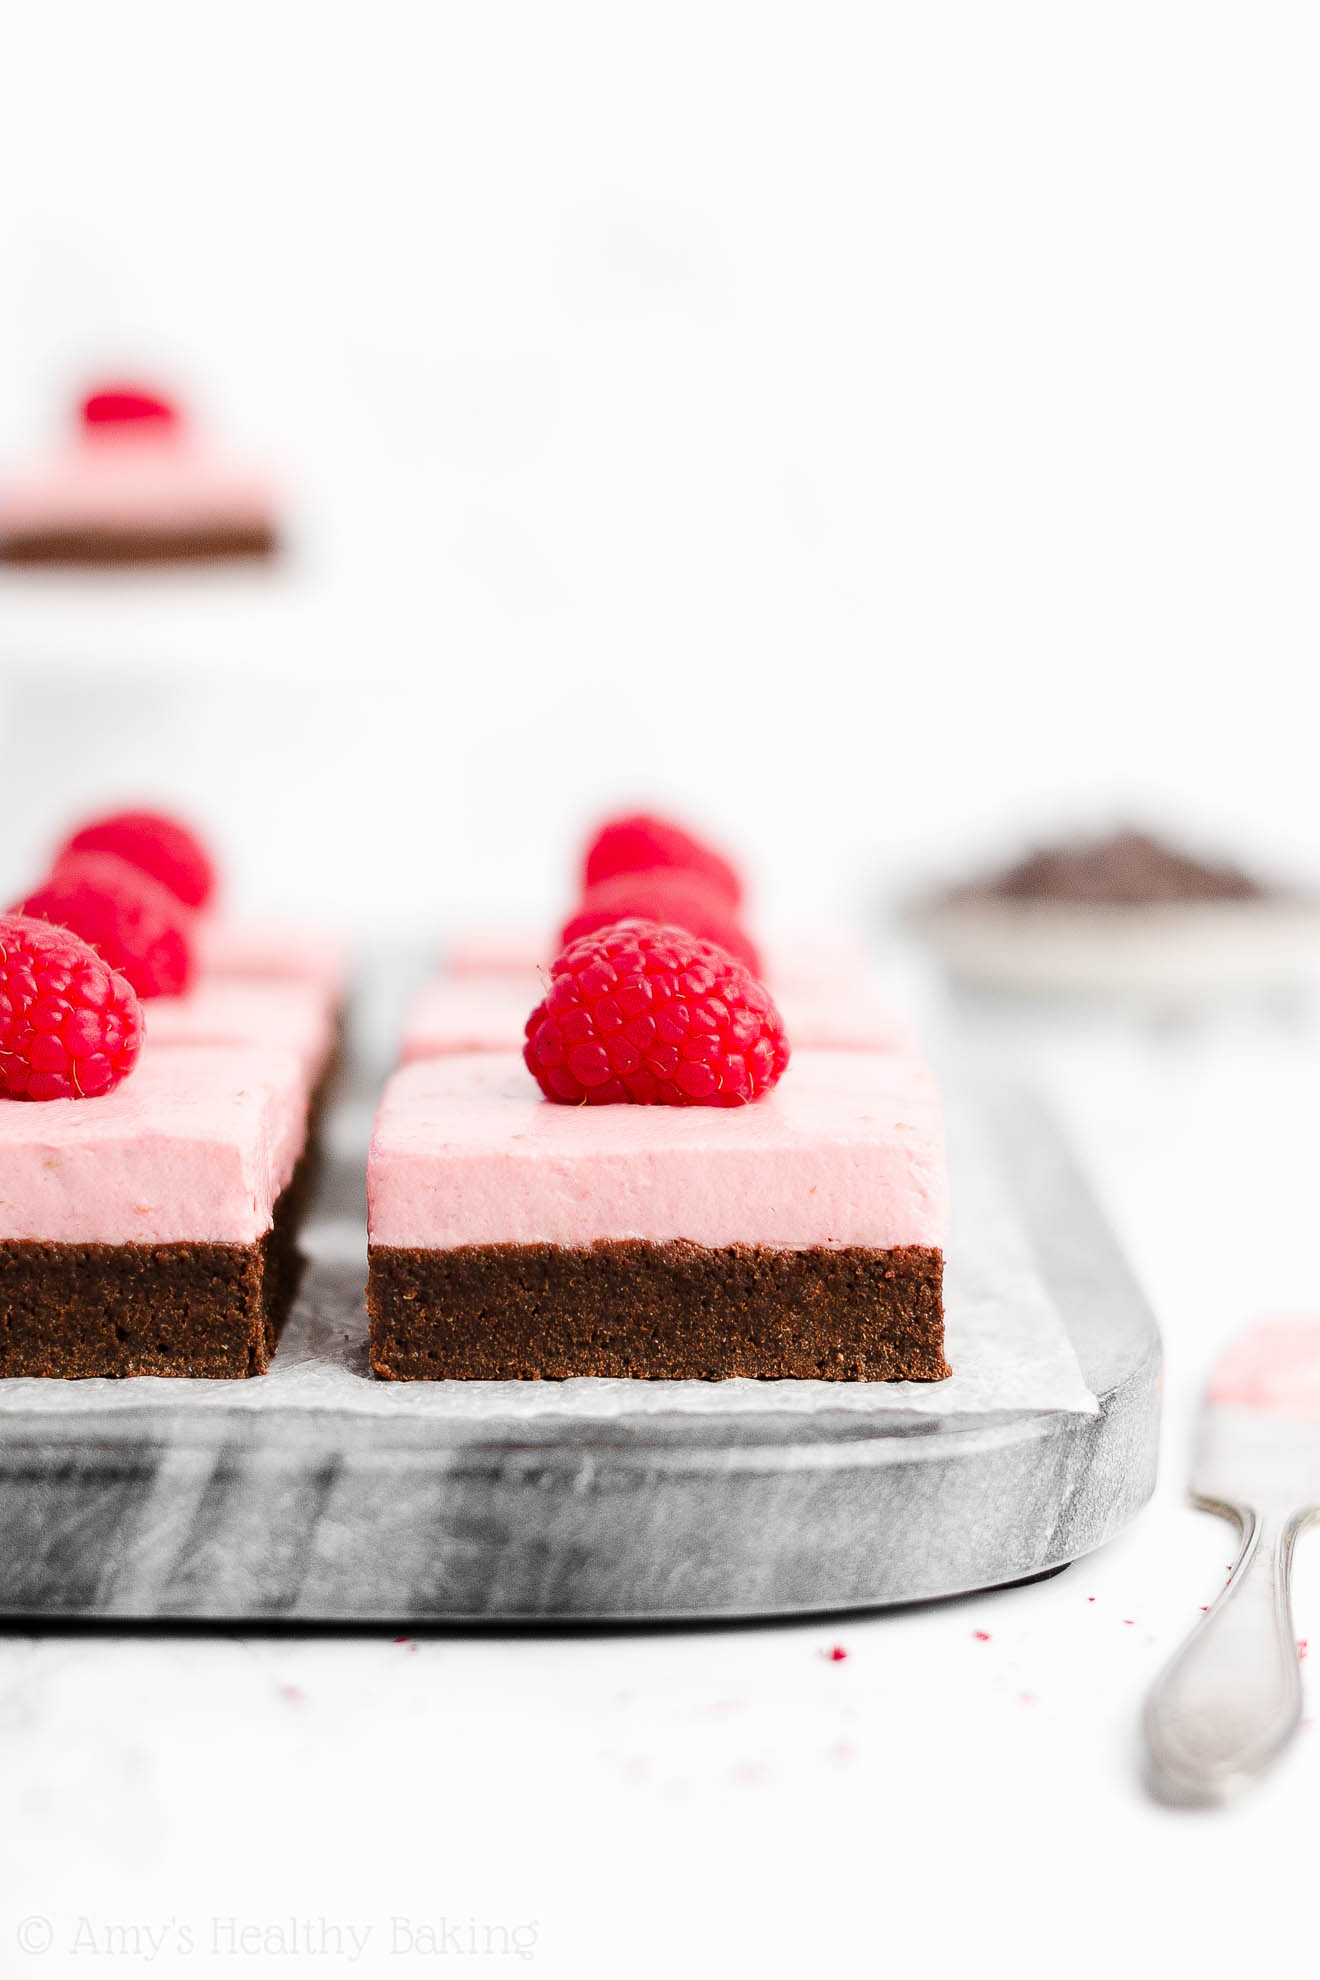 Easy Healthy Homemade Cocoa Powder Fudgy Dark Chocolate Brownies + Sugar Free Greek Yogurt Raspberry Frosting